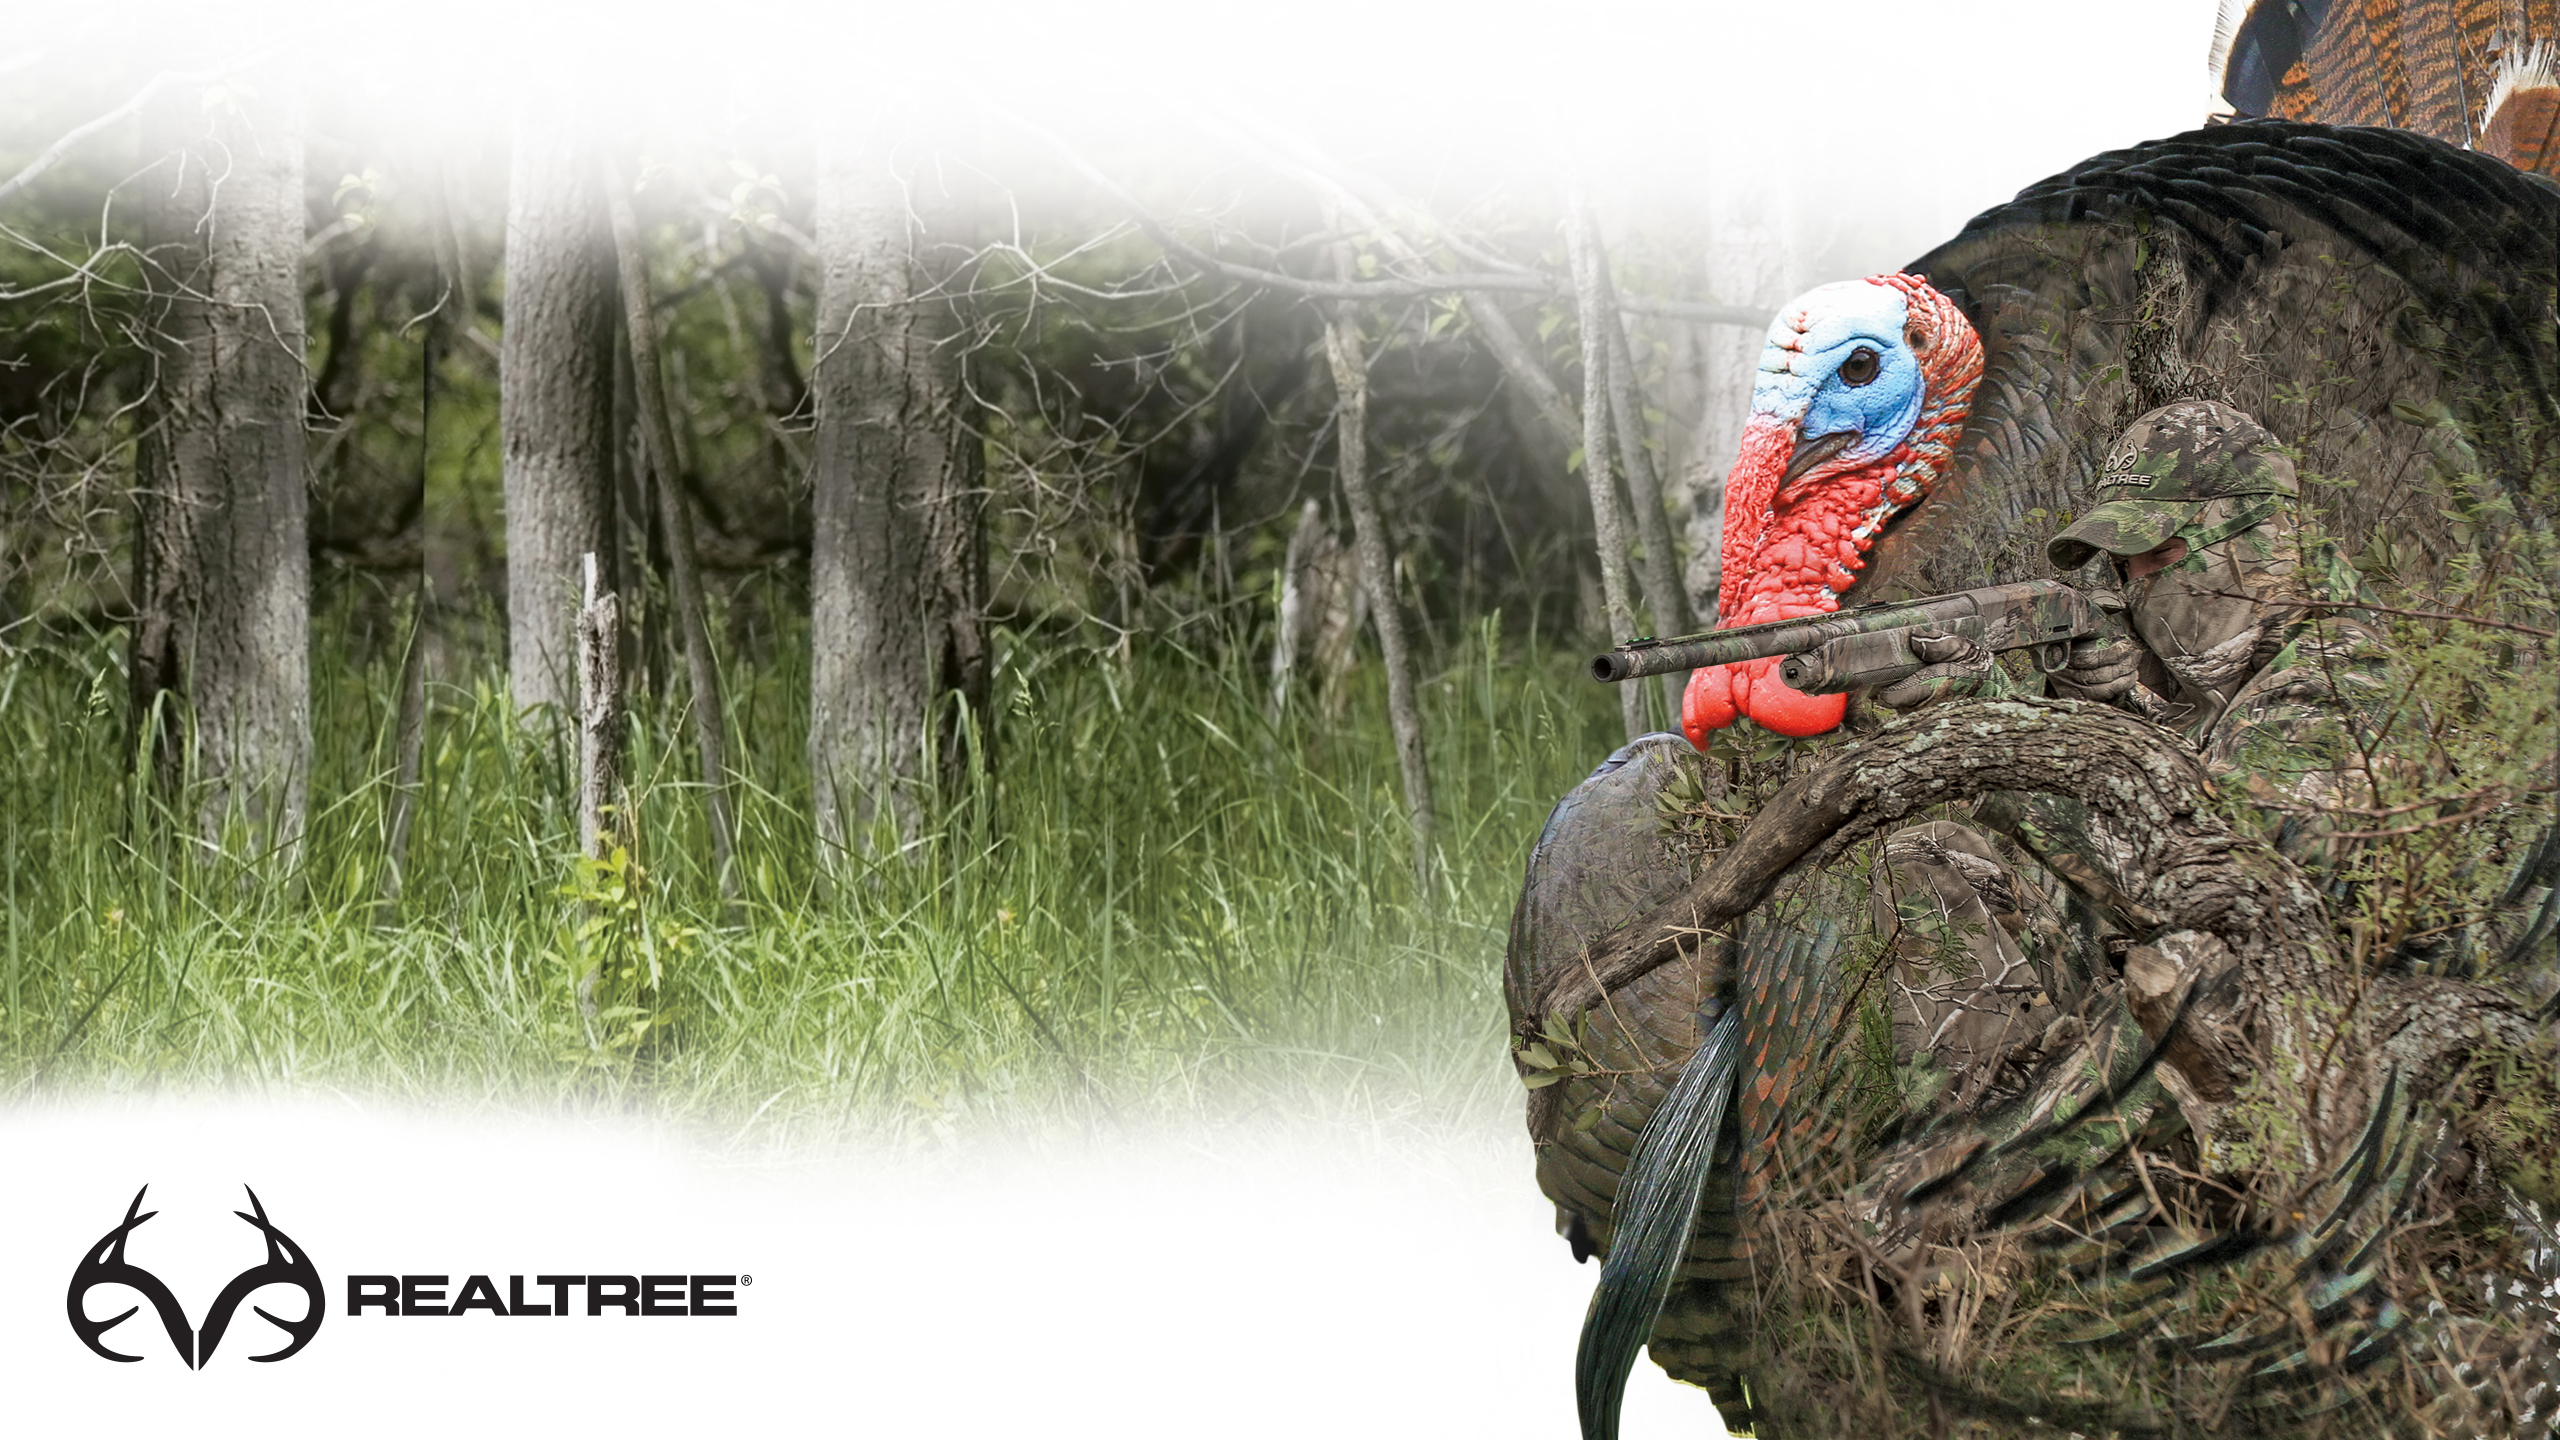 Wallpapers Realtree